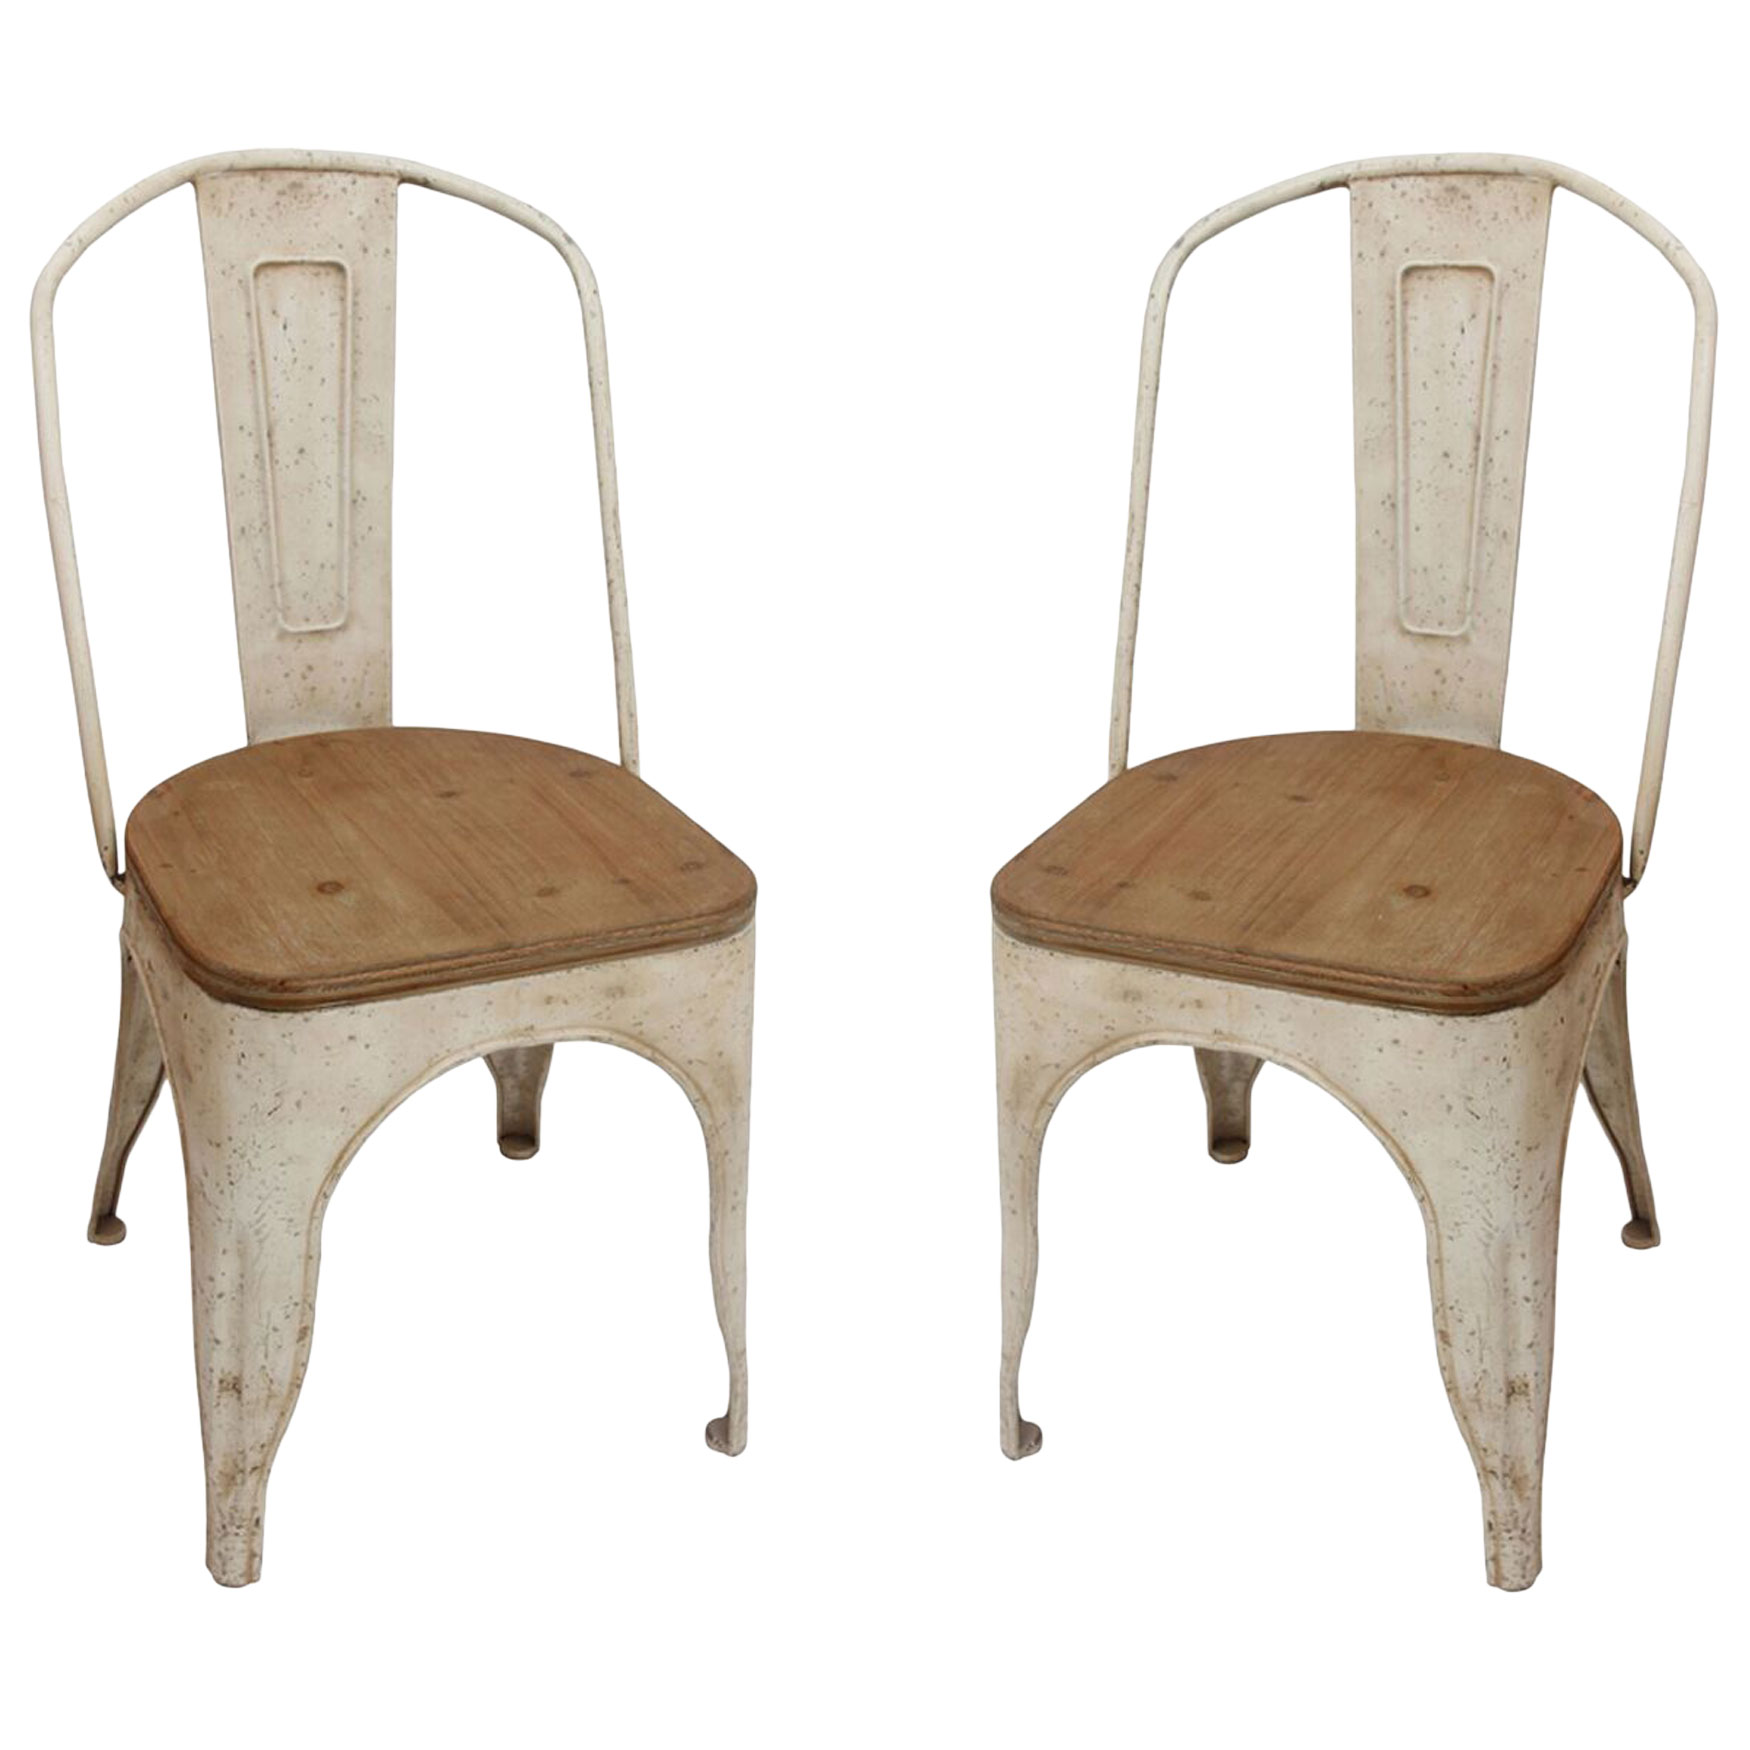 Farmhouse Chairs, WHITE